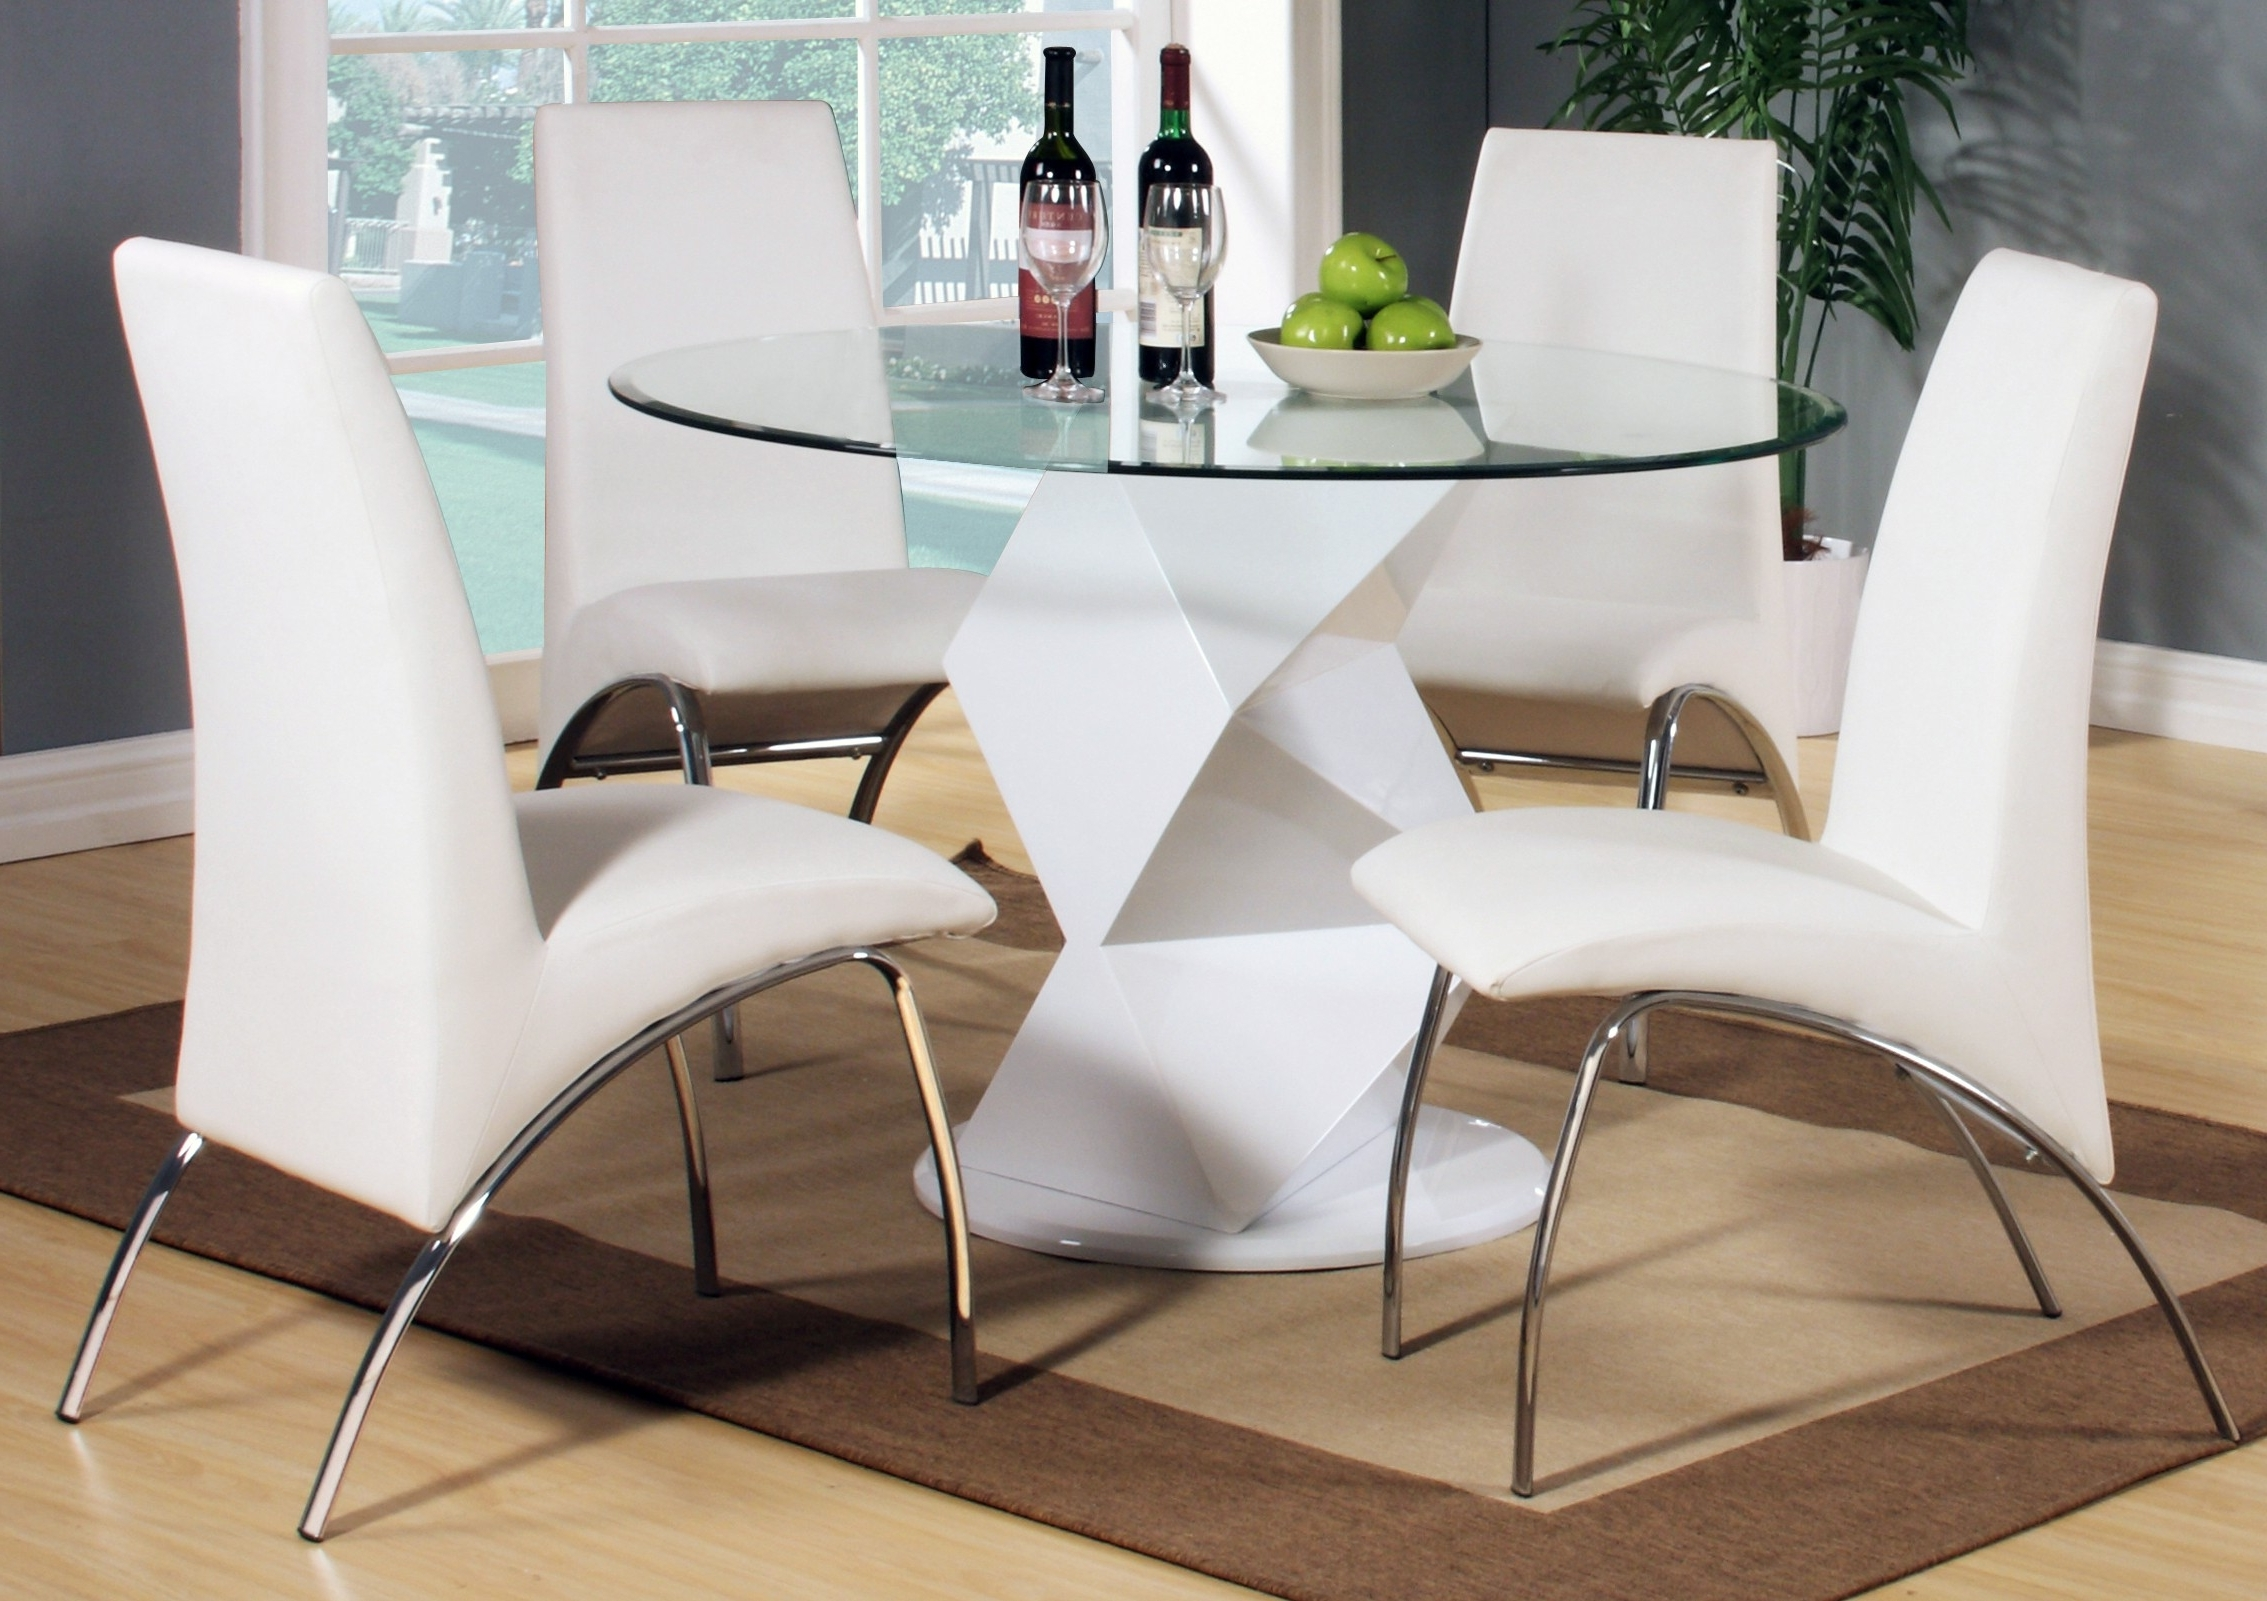 Well Known Finn White High Gloss Round Dining Table Set 4 Seater With Regard To Round High Gloss Dining Tables (View 23 of 25)